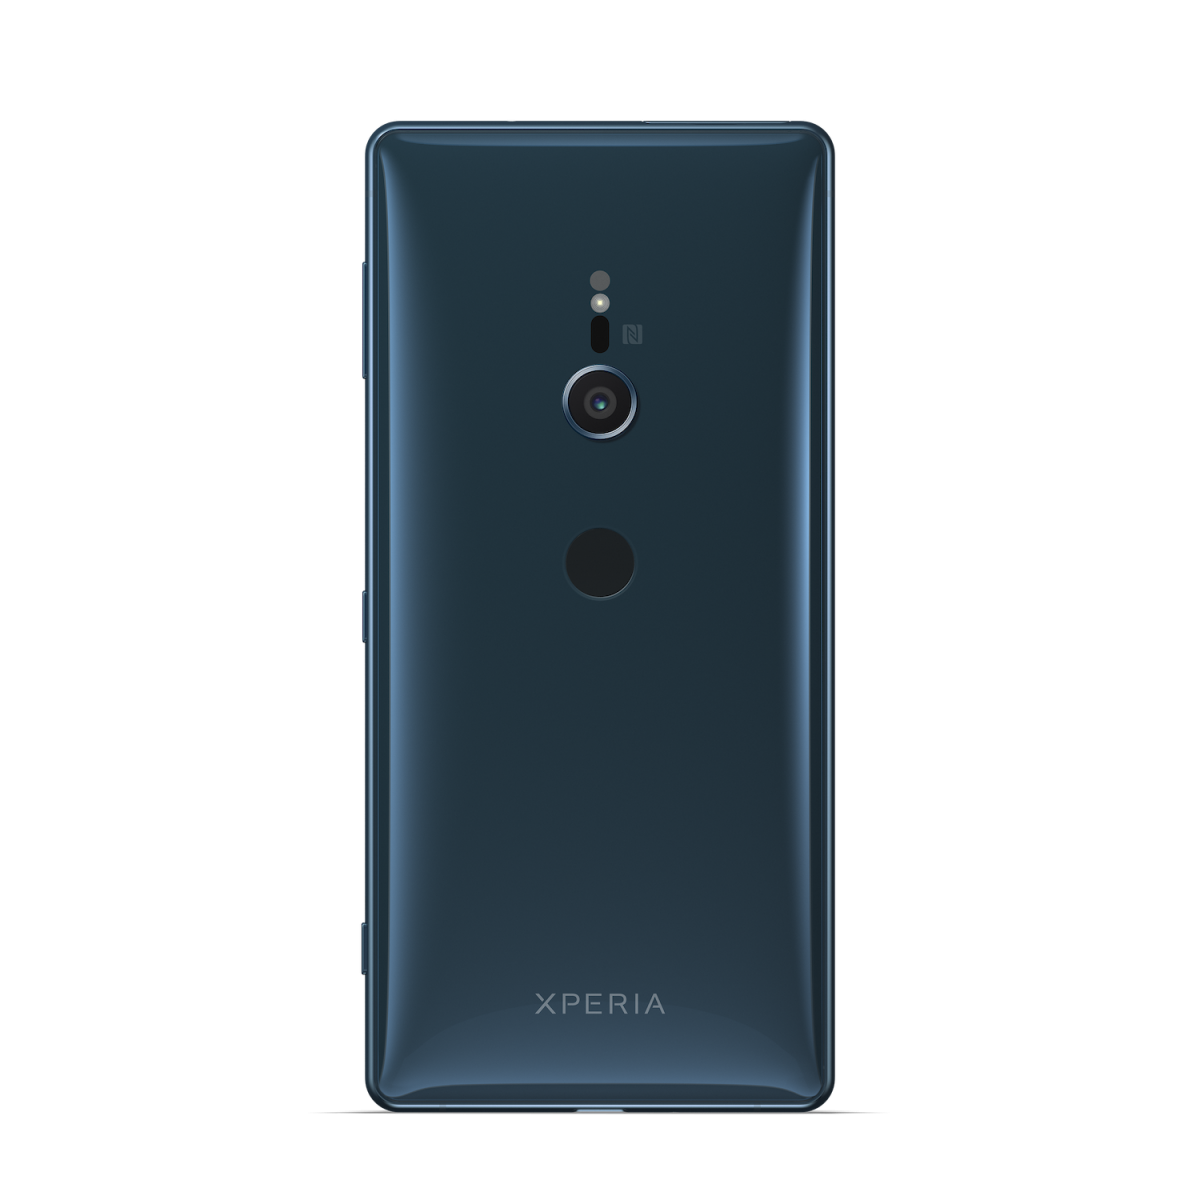 Sony Announces the Xperia XZ2 and the Xperia XZ2 Compact